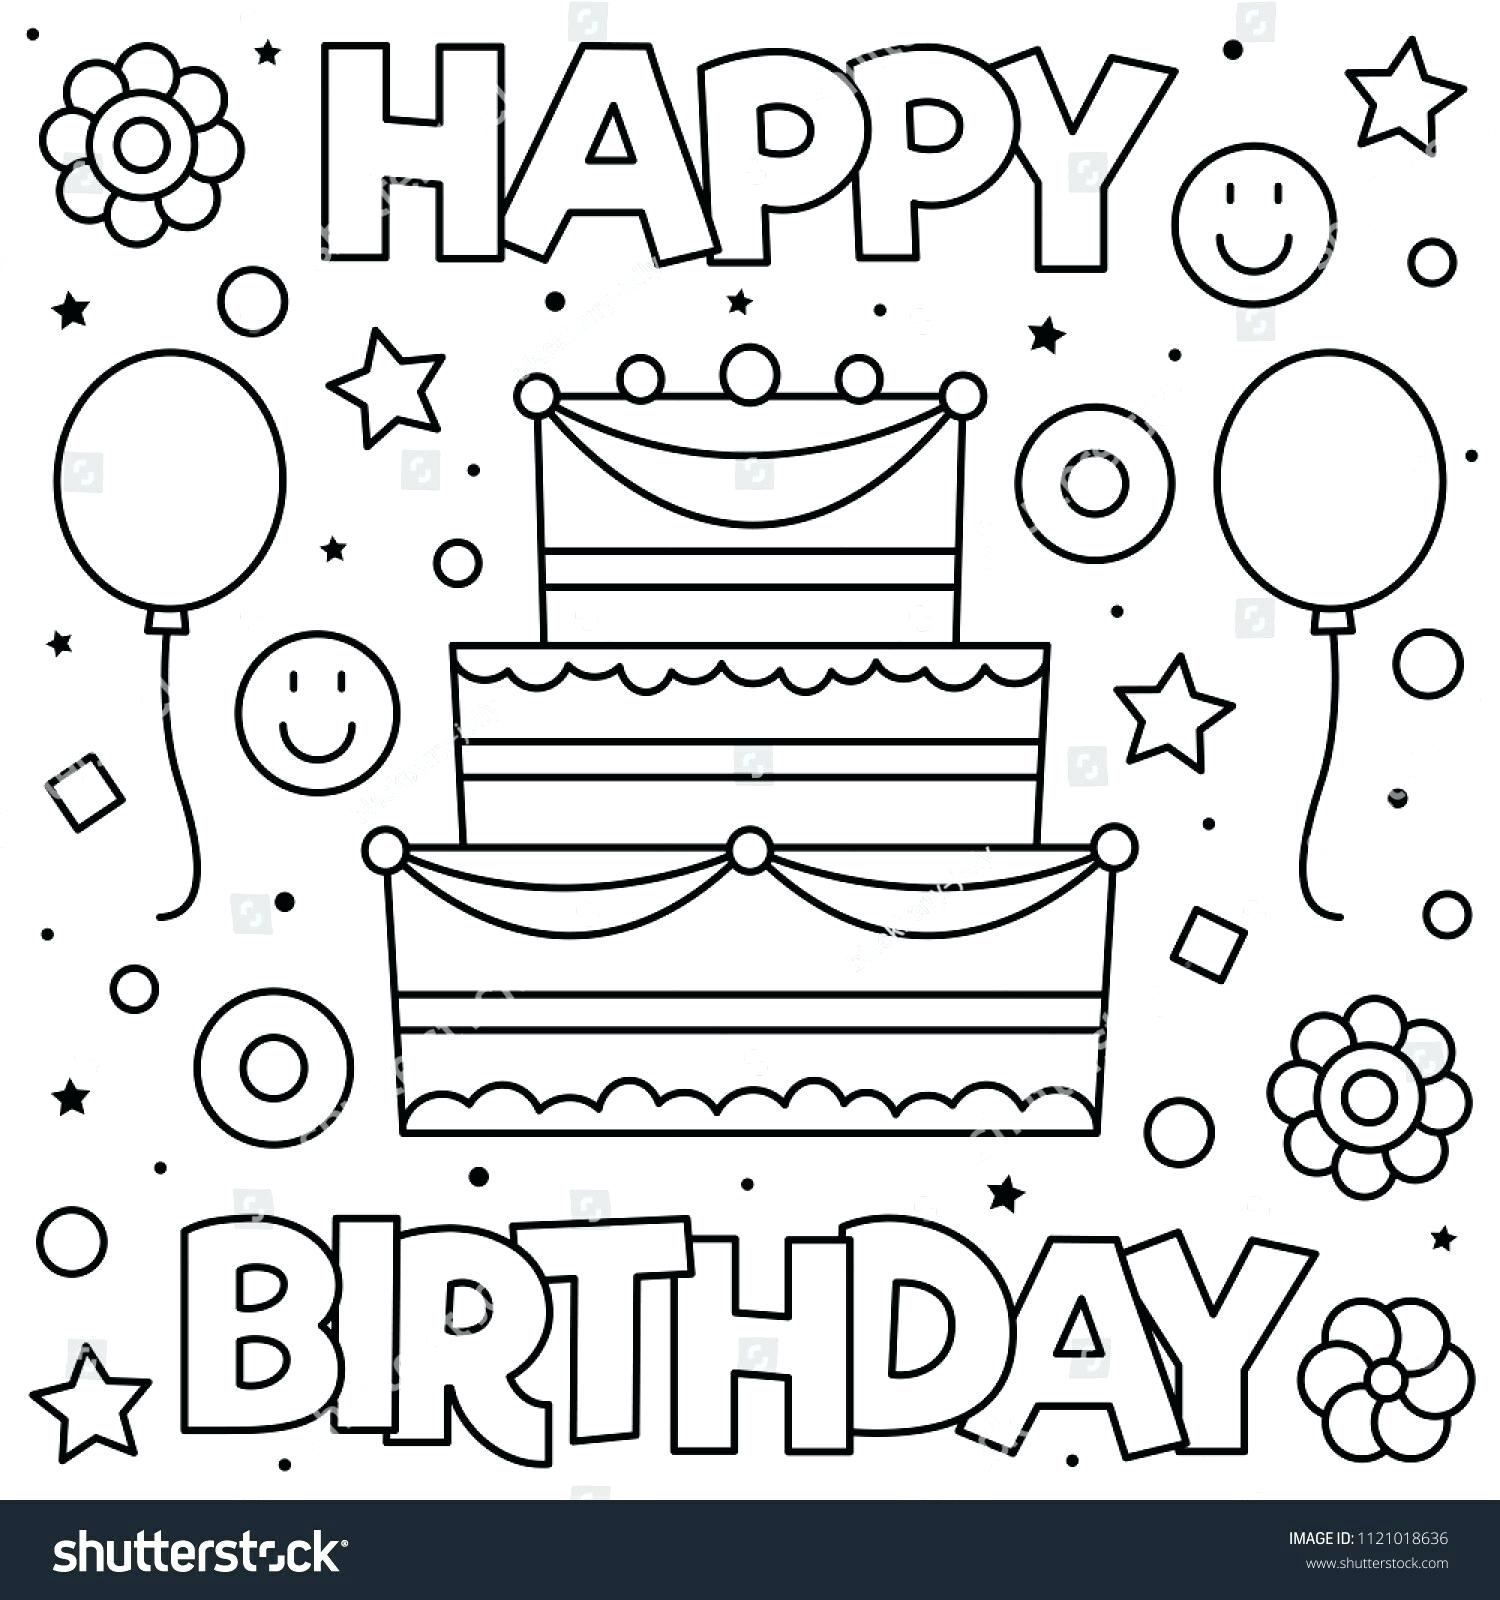 Coloring Pages For Birthday 4 Year Old Birthday Coloring Pages Regionpaperco